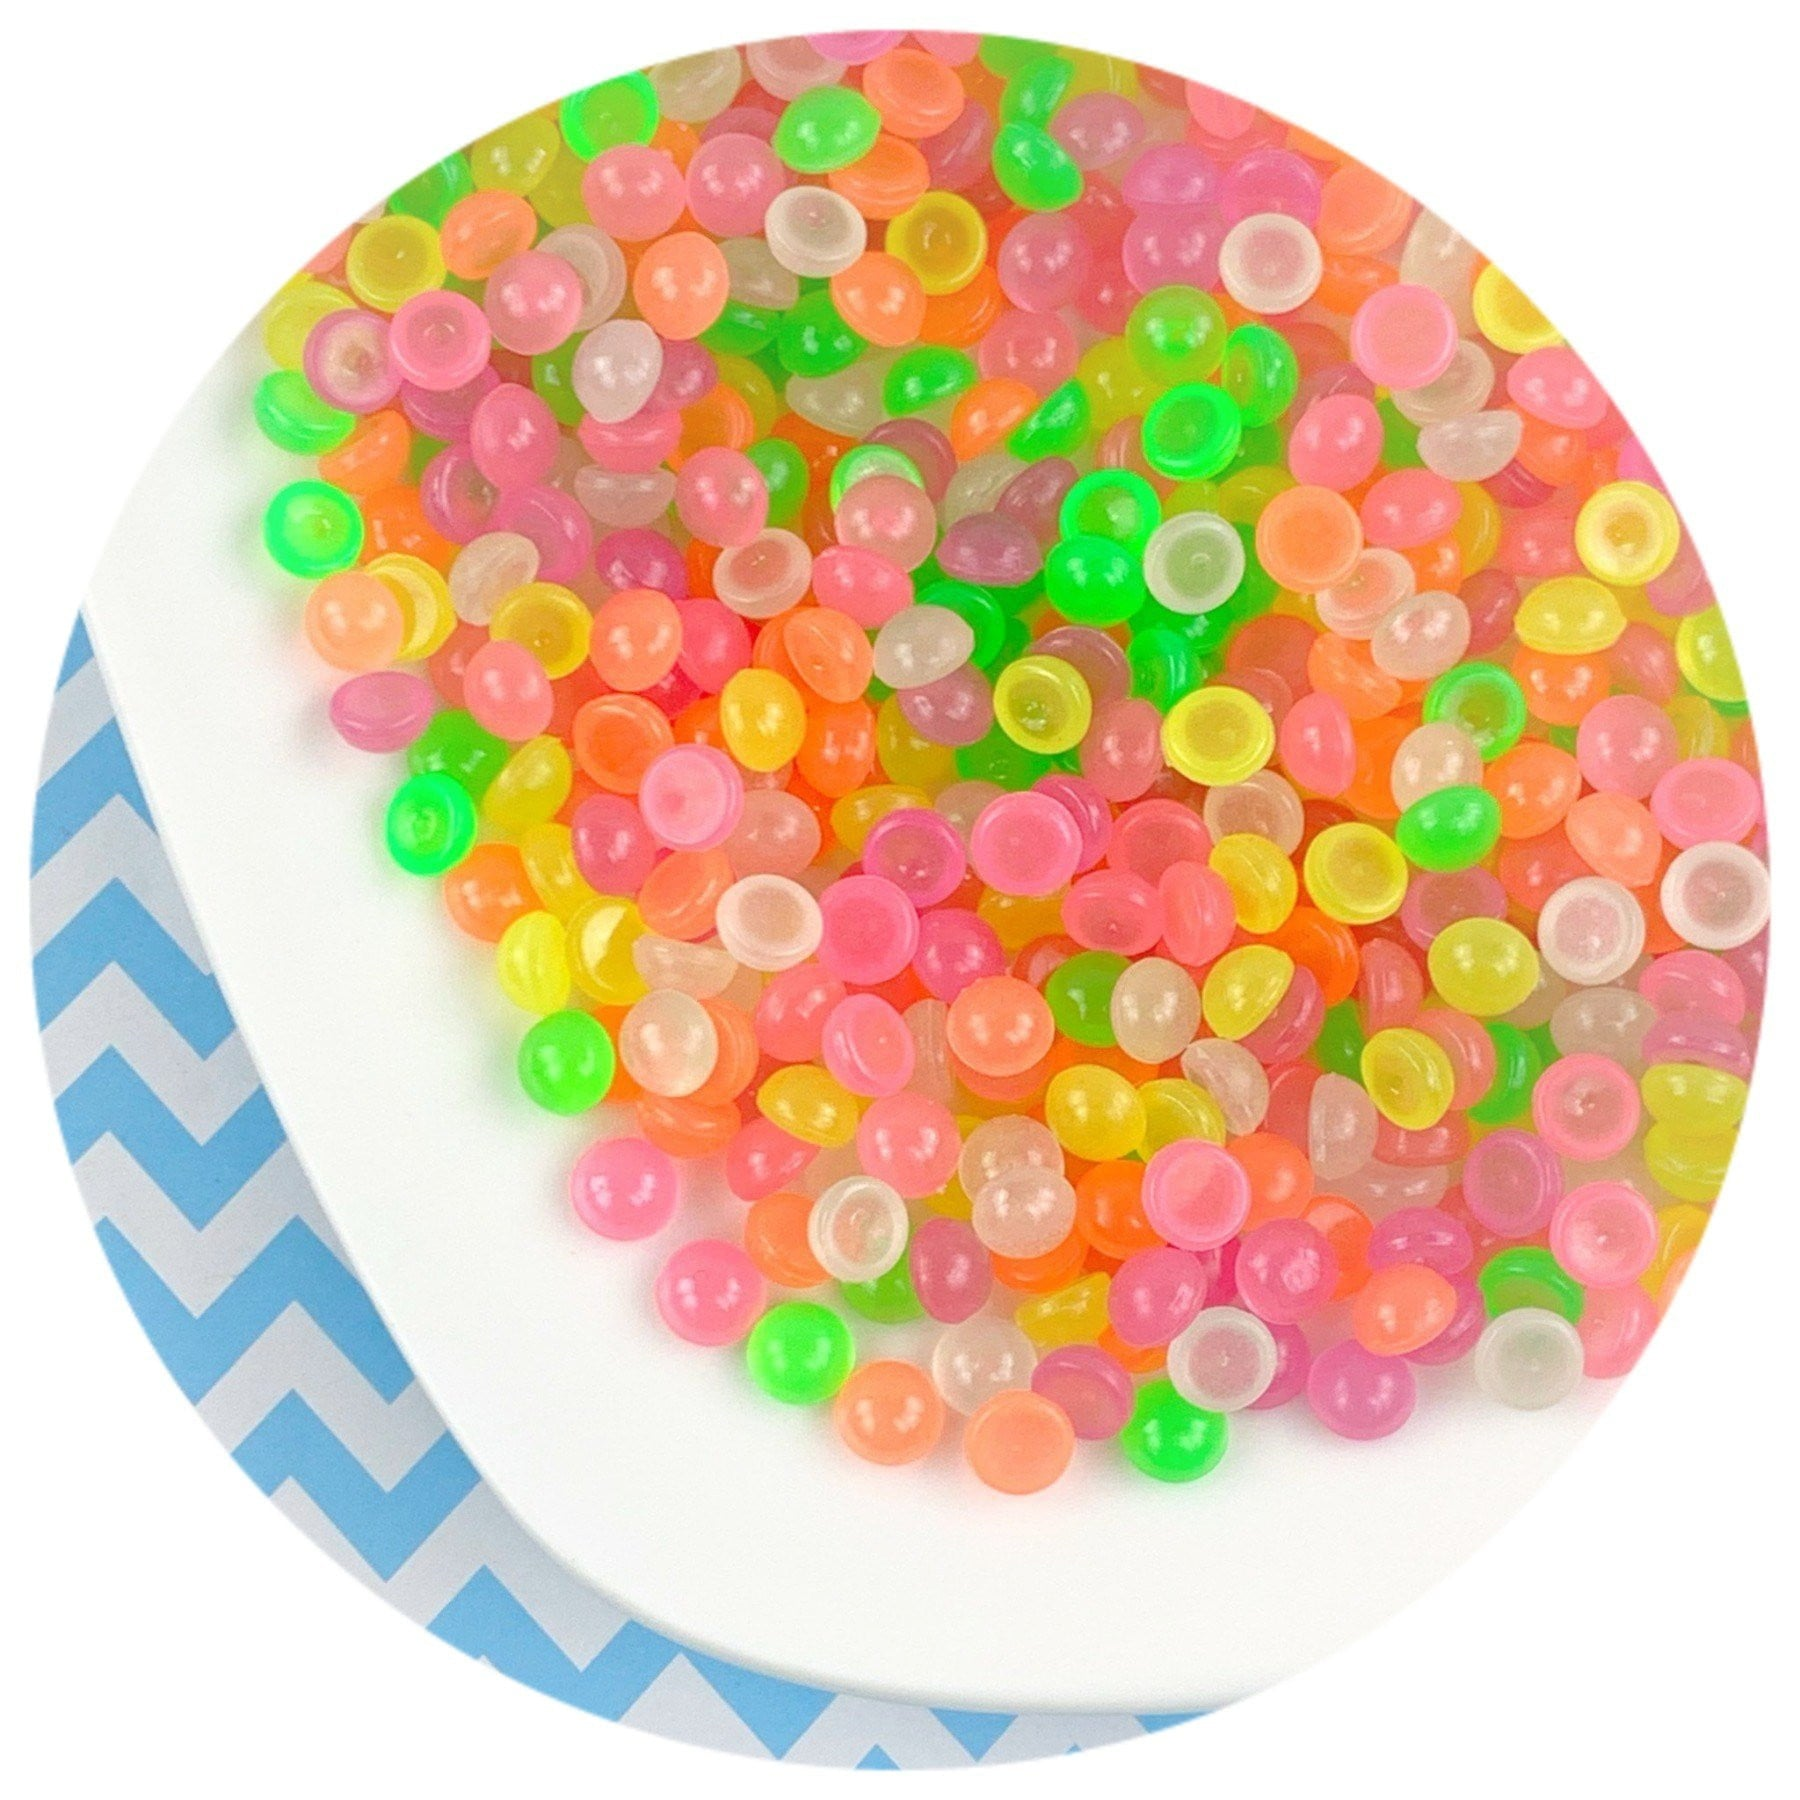 Glow Fishbowl Beads - Buy Slime Supplies - DopeSlimes